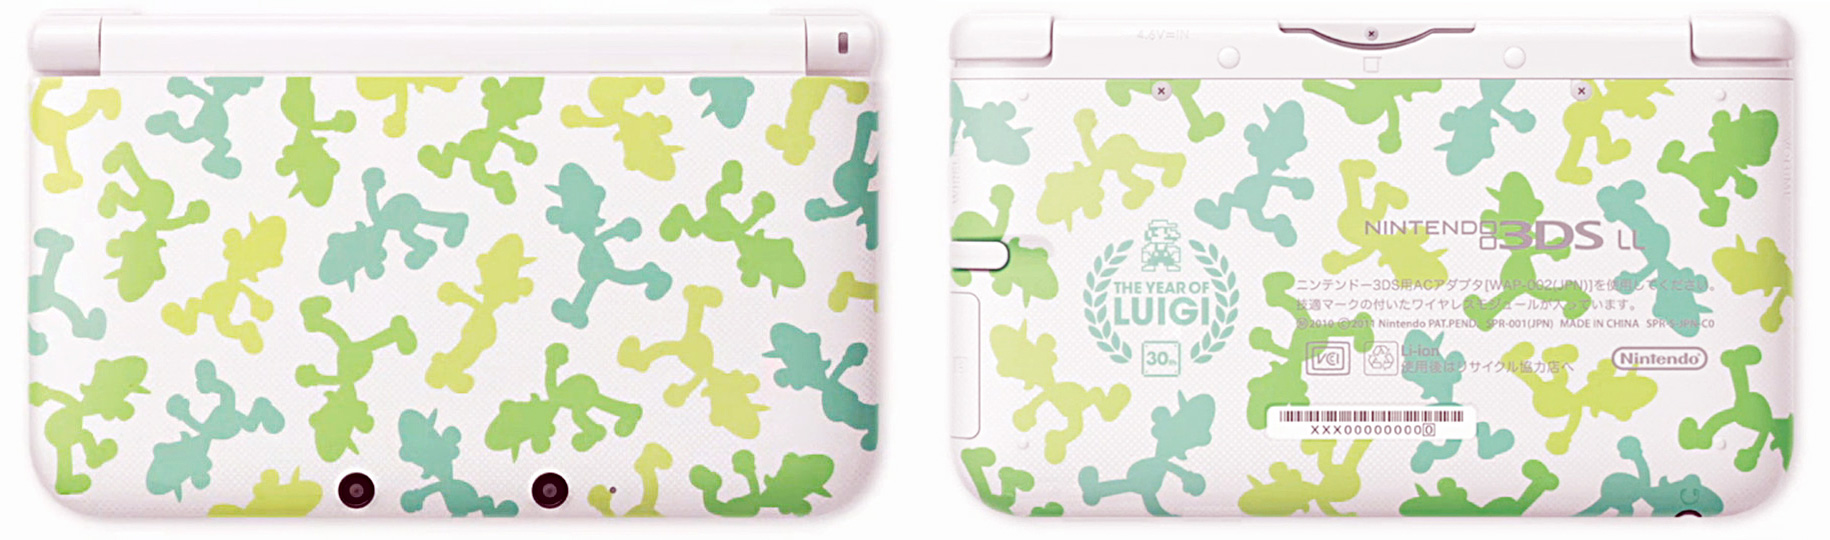 year-of-luigi-3ds-xl